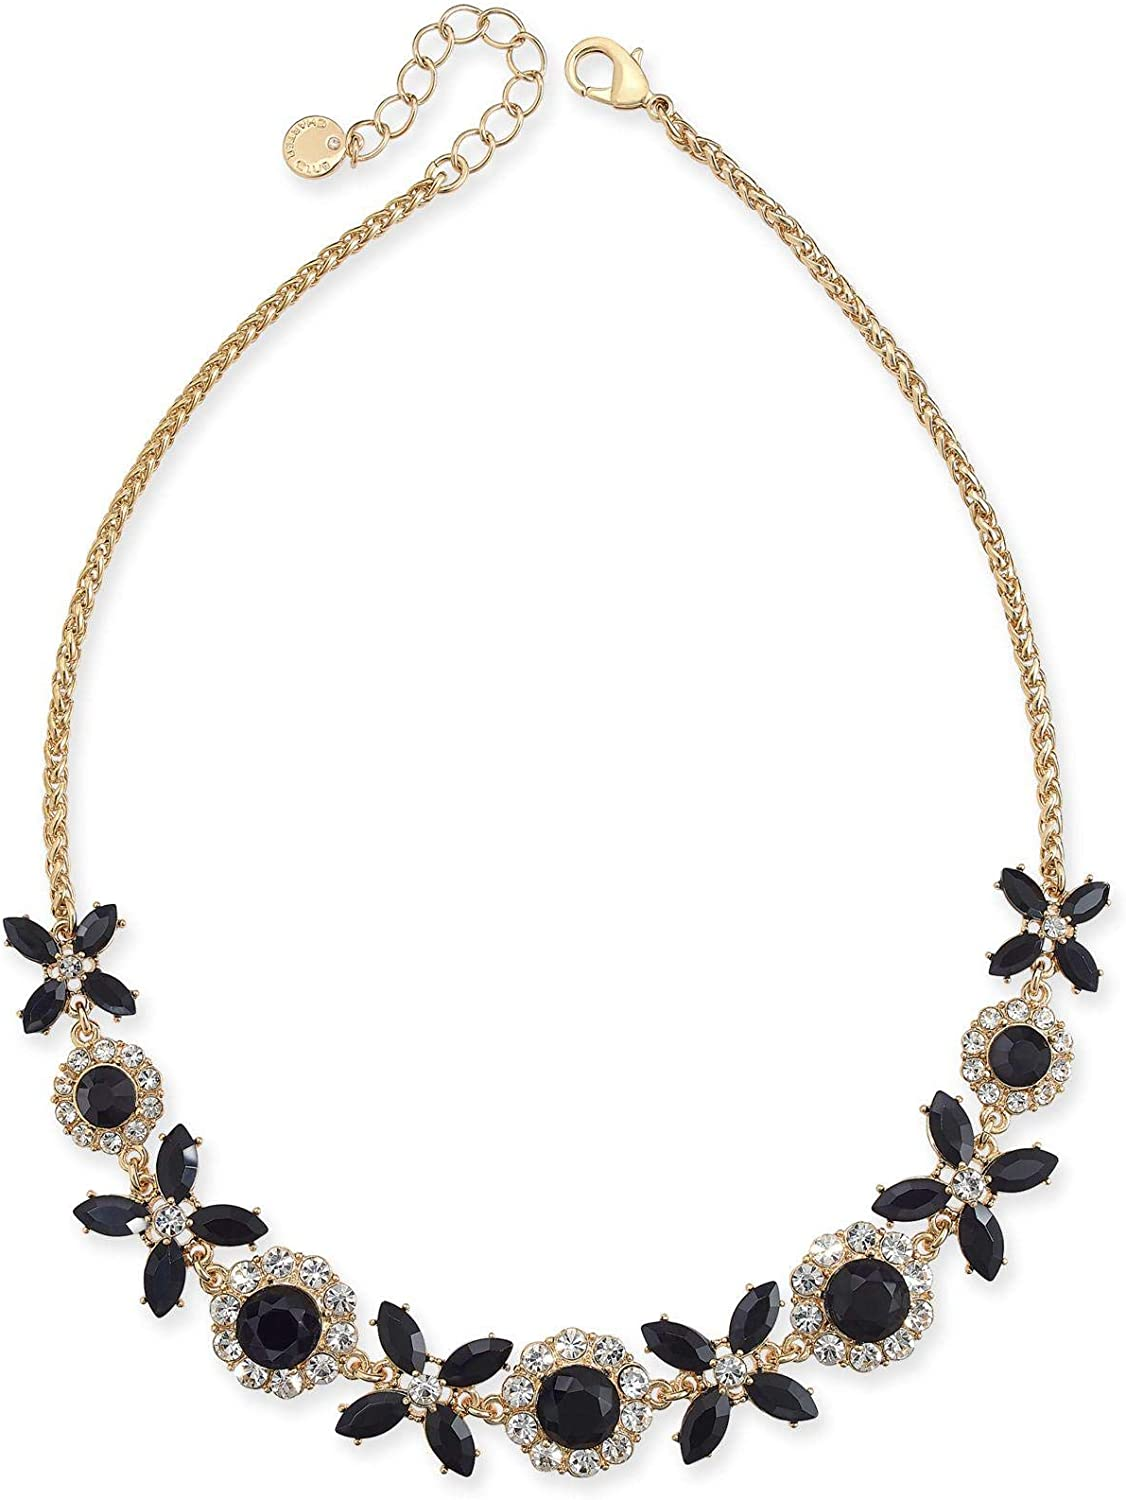 Charter Club Gold-Tone Crystal & Stone Collar Necklace, 17